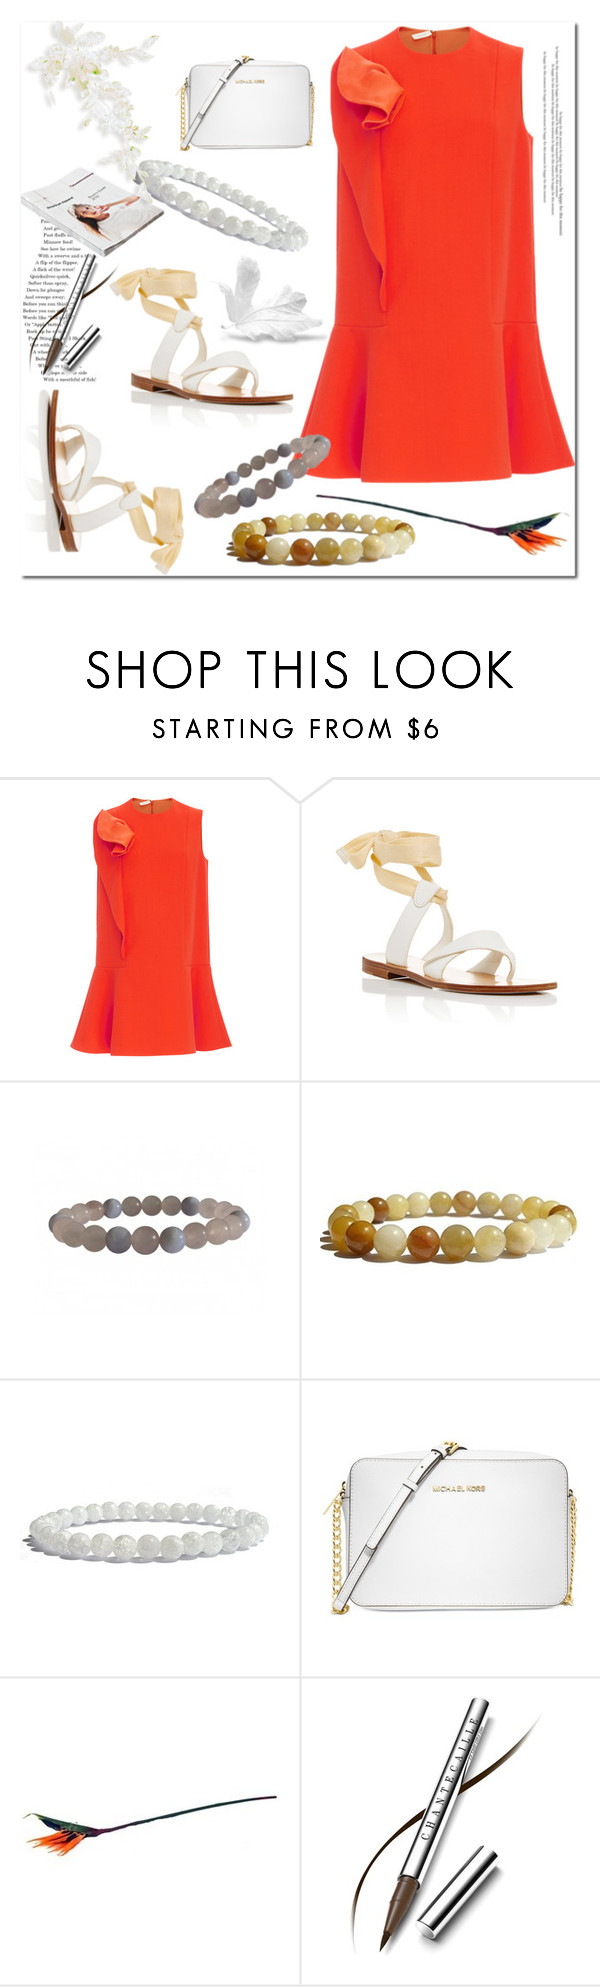 """Street Style"" by ilona-828 ❤ liked on Polyvore featuring Delpozo, Sarah Flint, Michael Kors, American Apparel, Chantecaille, StreetStyle, dress, polyvoreeditorial and Zenstore"